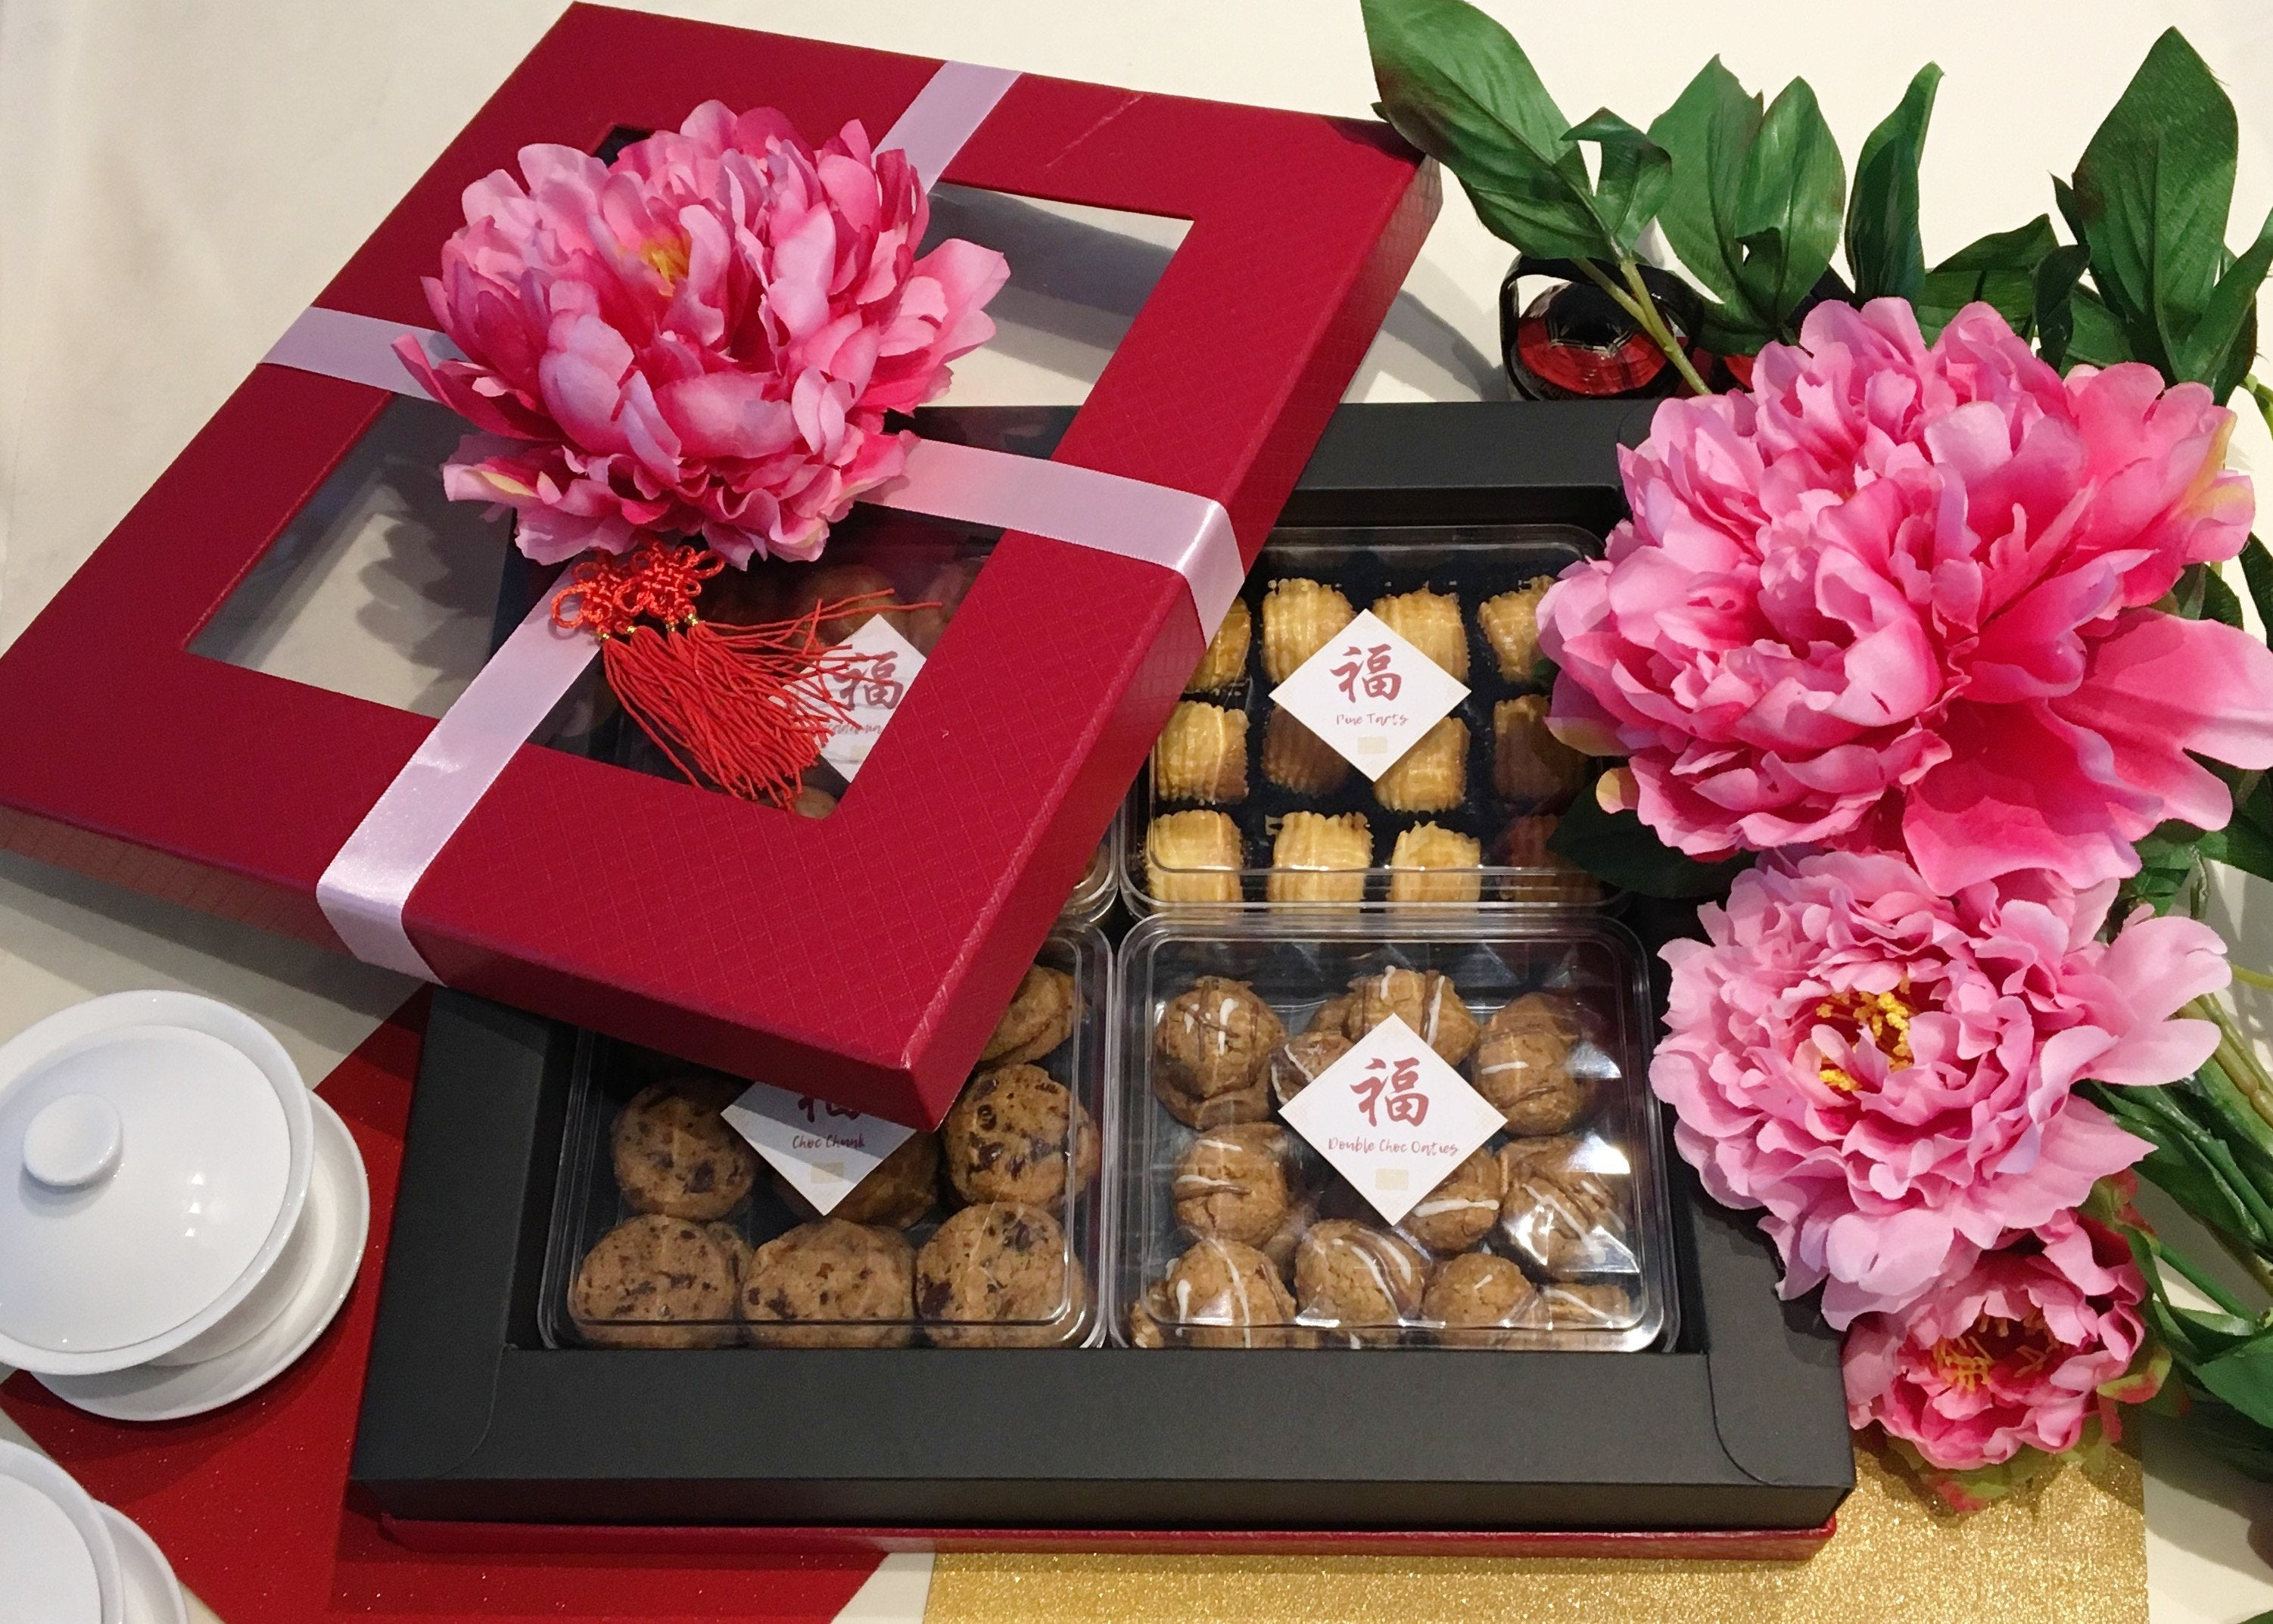 The Shanghai Glam - Artisan Pastry Box, Macaron, Profiteroles, Petit Gateau, Eclair, Valentine's chocolate, Truffle, Chocolate, Little Black Pastry Box